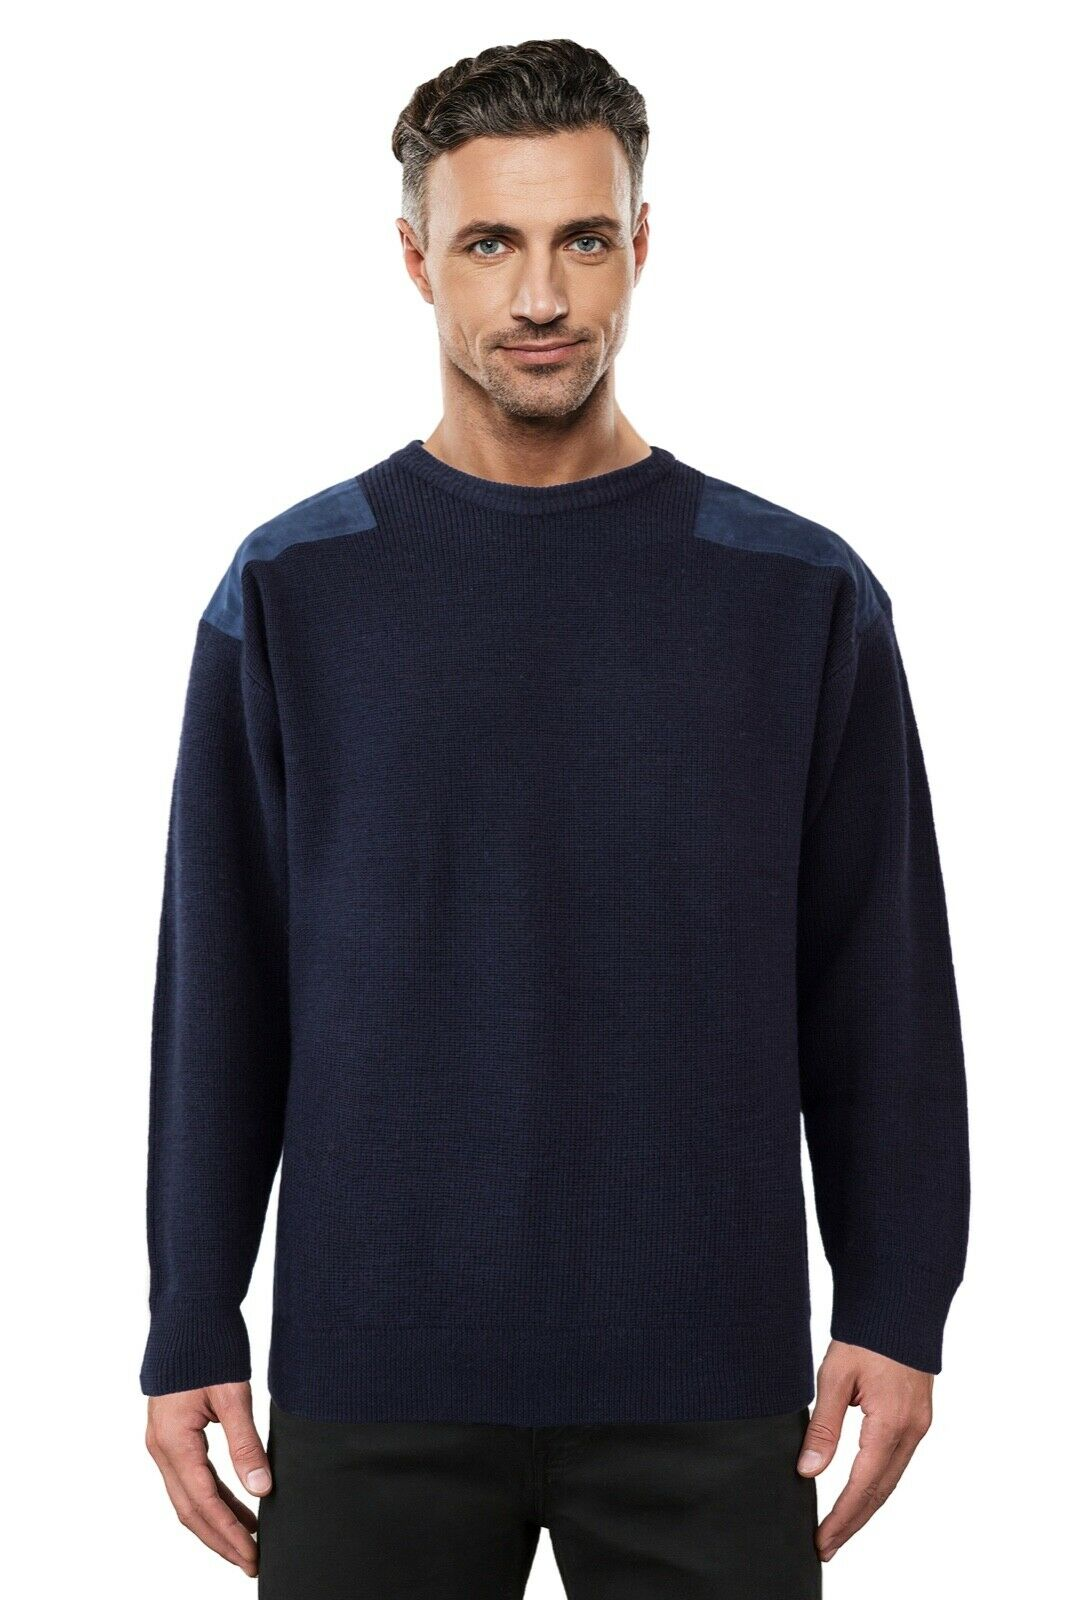 Navy Ansett Pure wolleFisherman Rib Jumper schweißer Knitwear With Elbow Patches